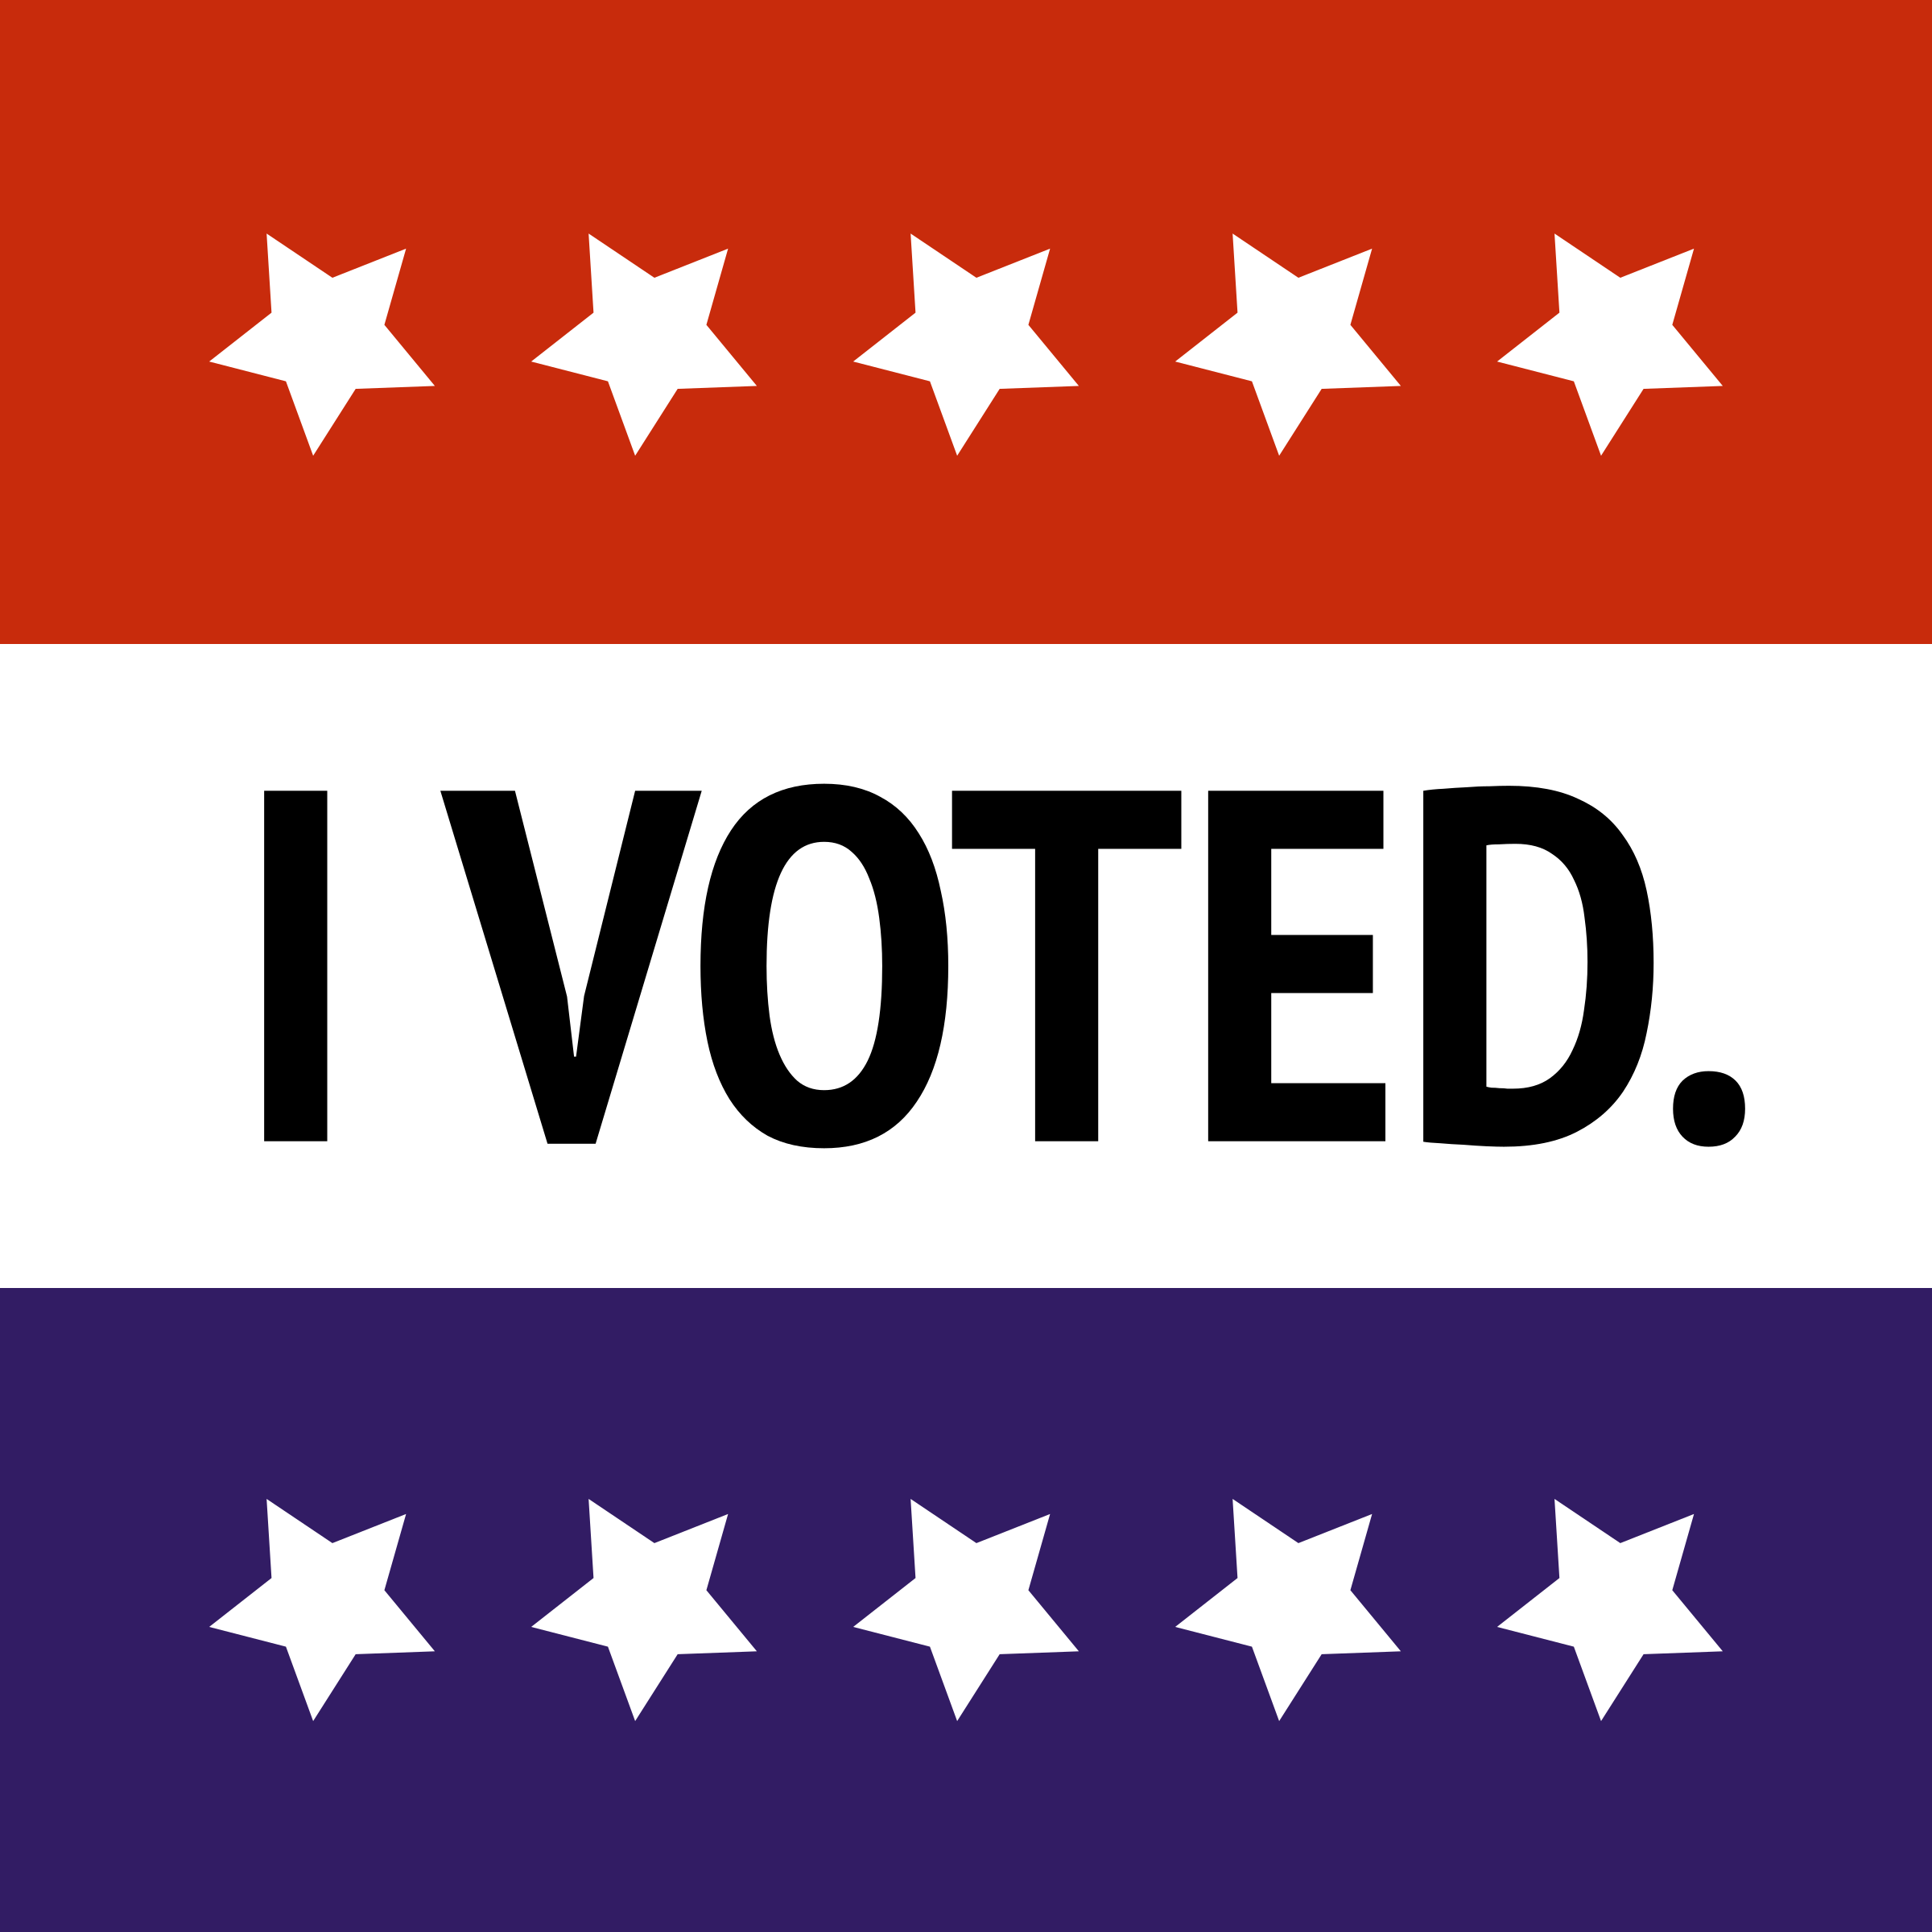 I Voted. by jonphillips